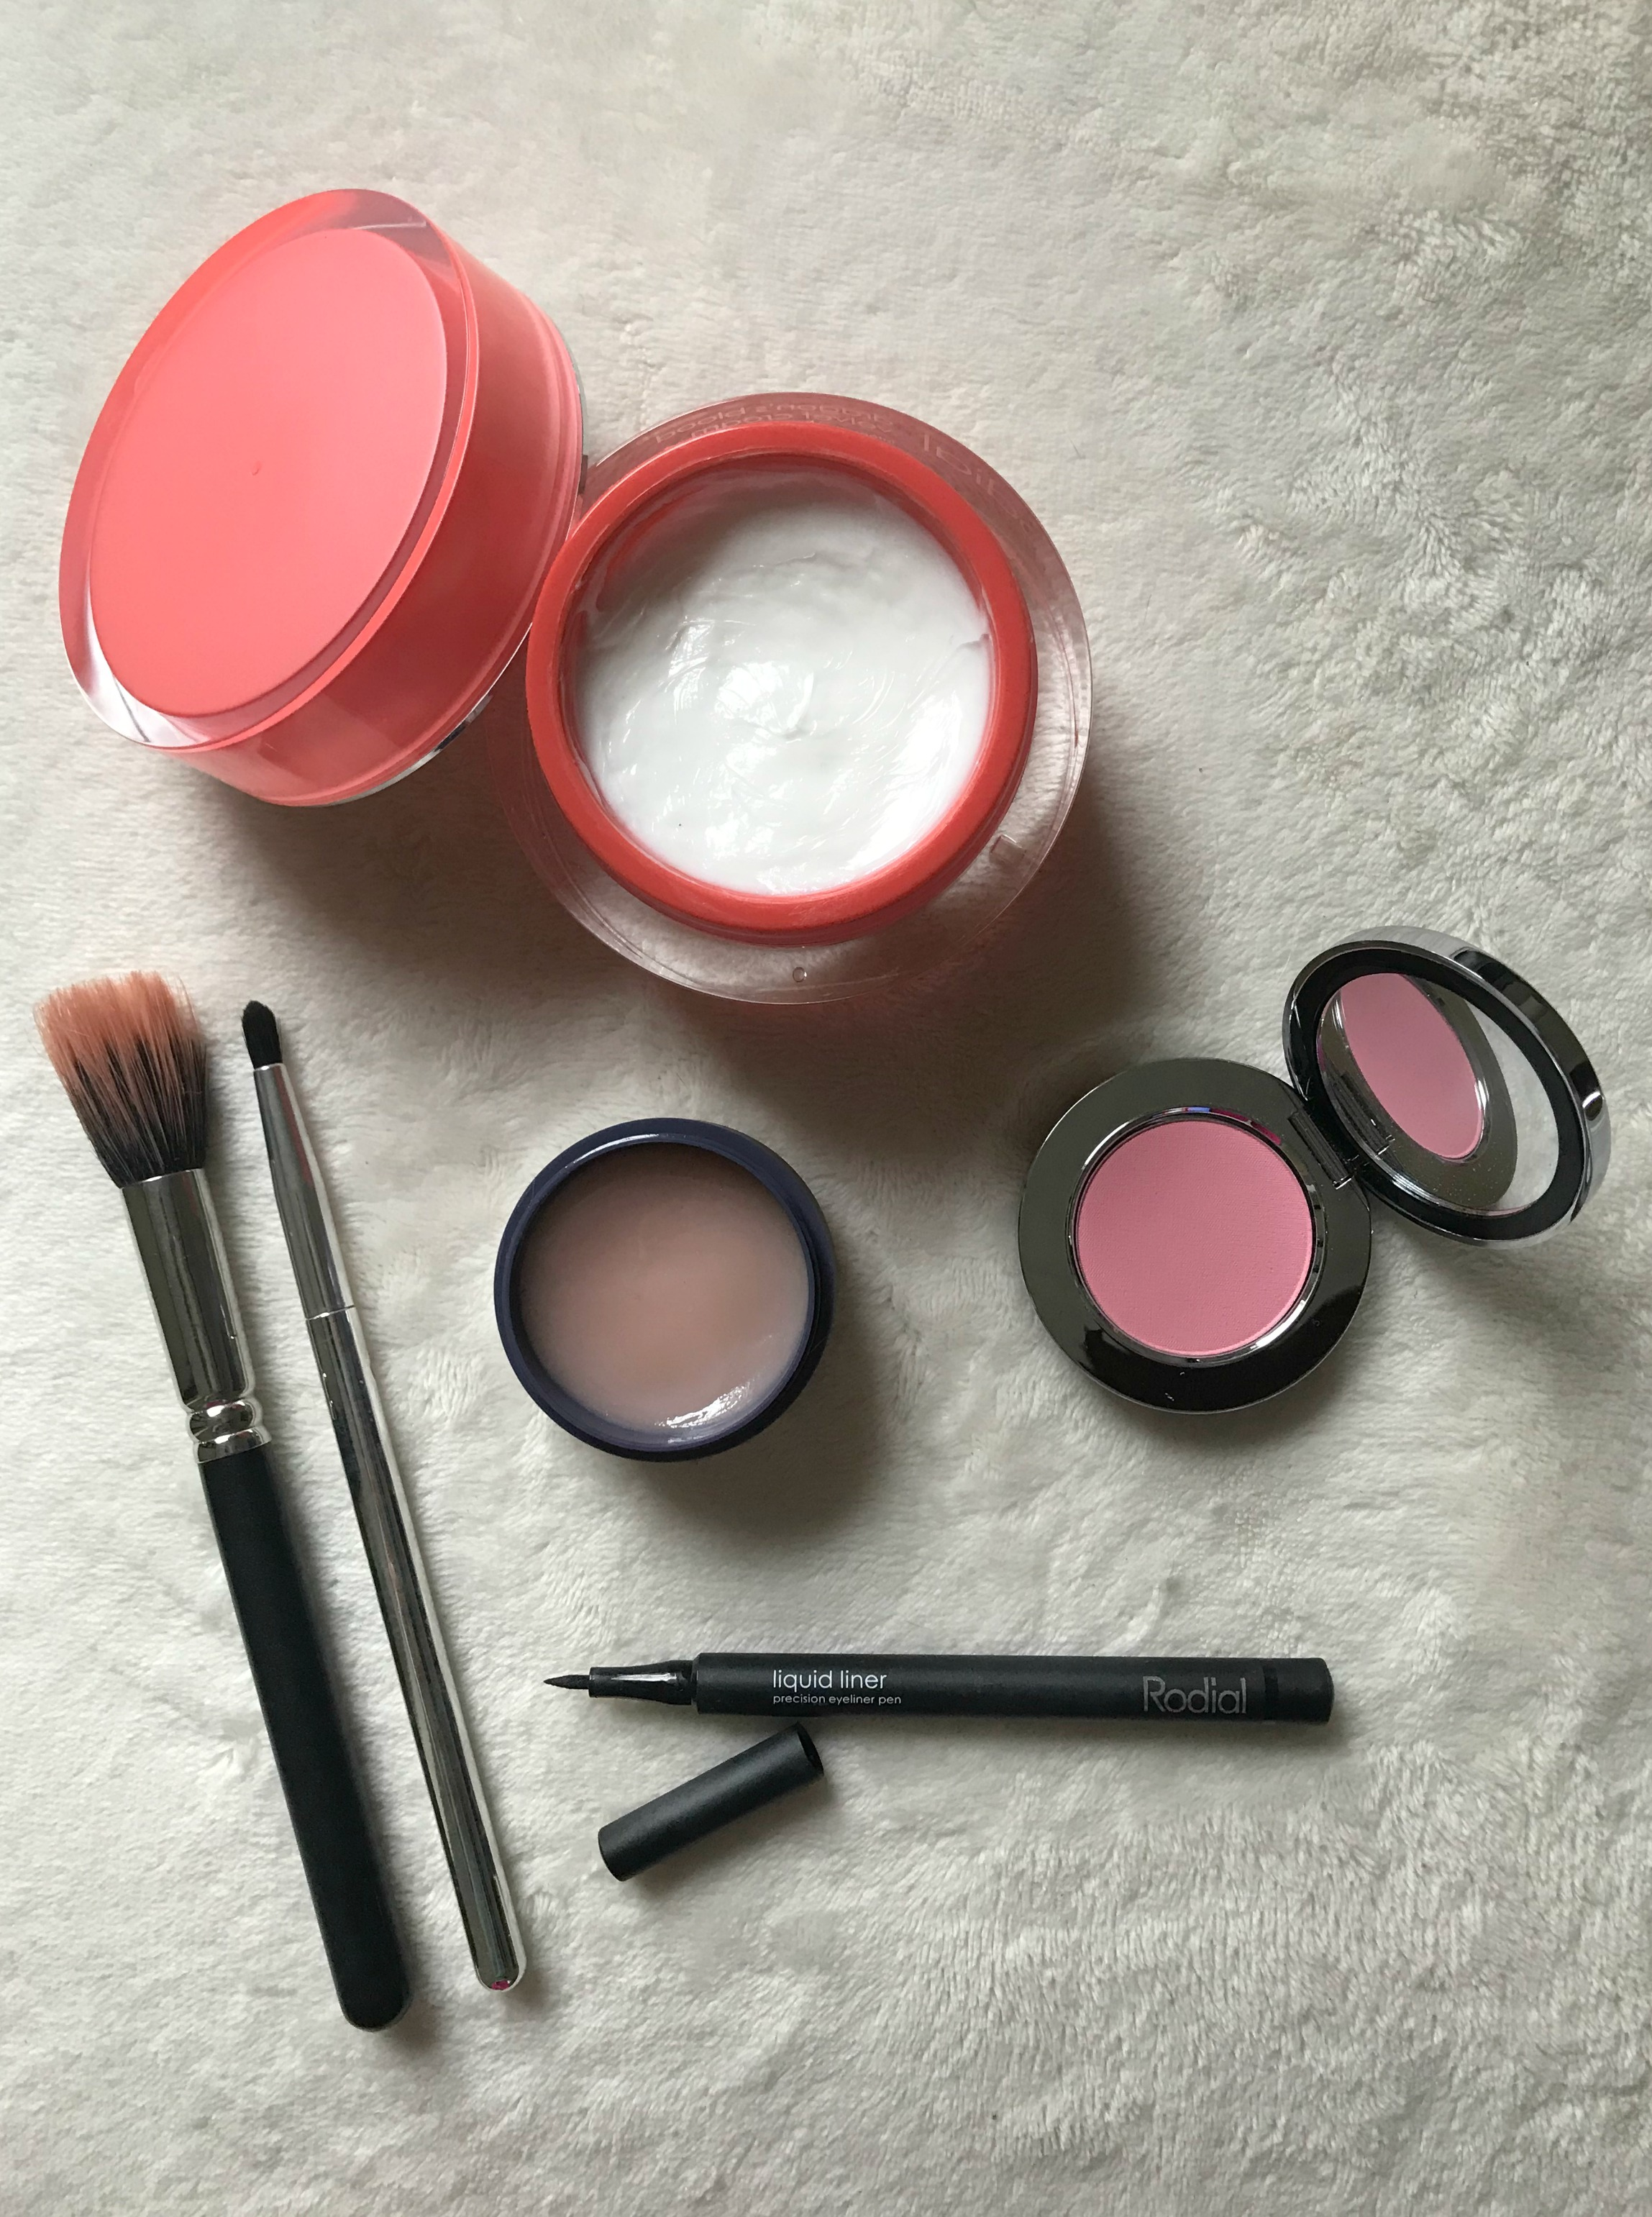 Rodial makeup and skincare